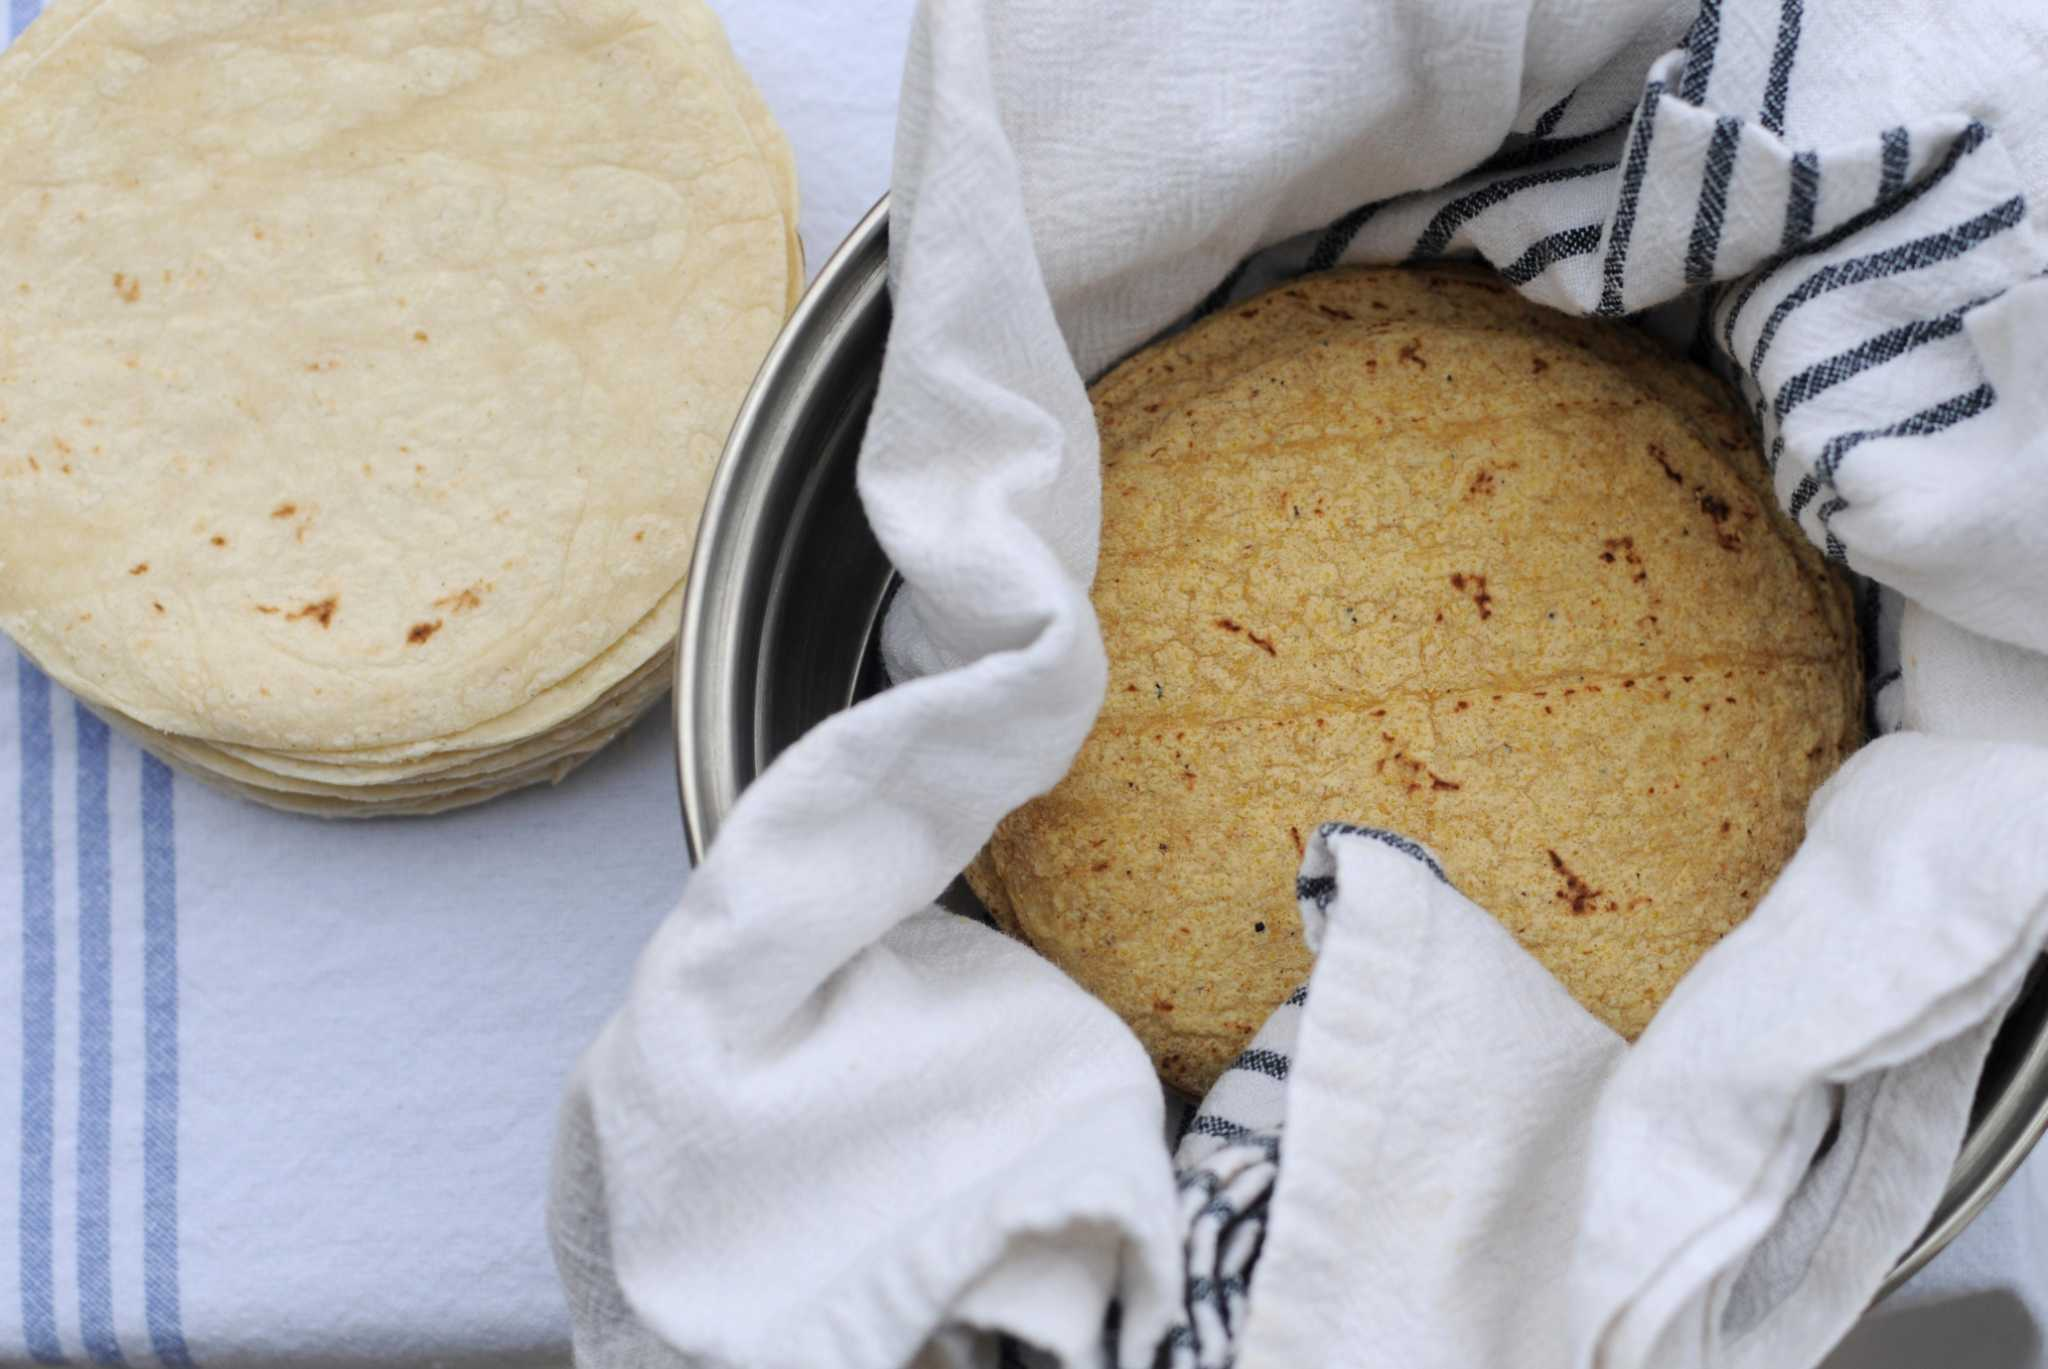 The best way to store and reheat leftover tortillas, hands-down